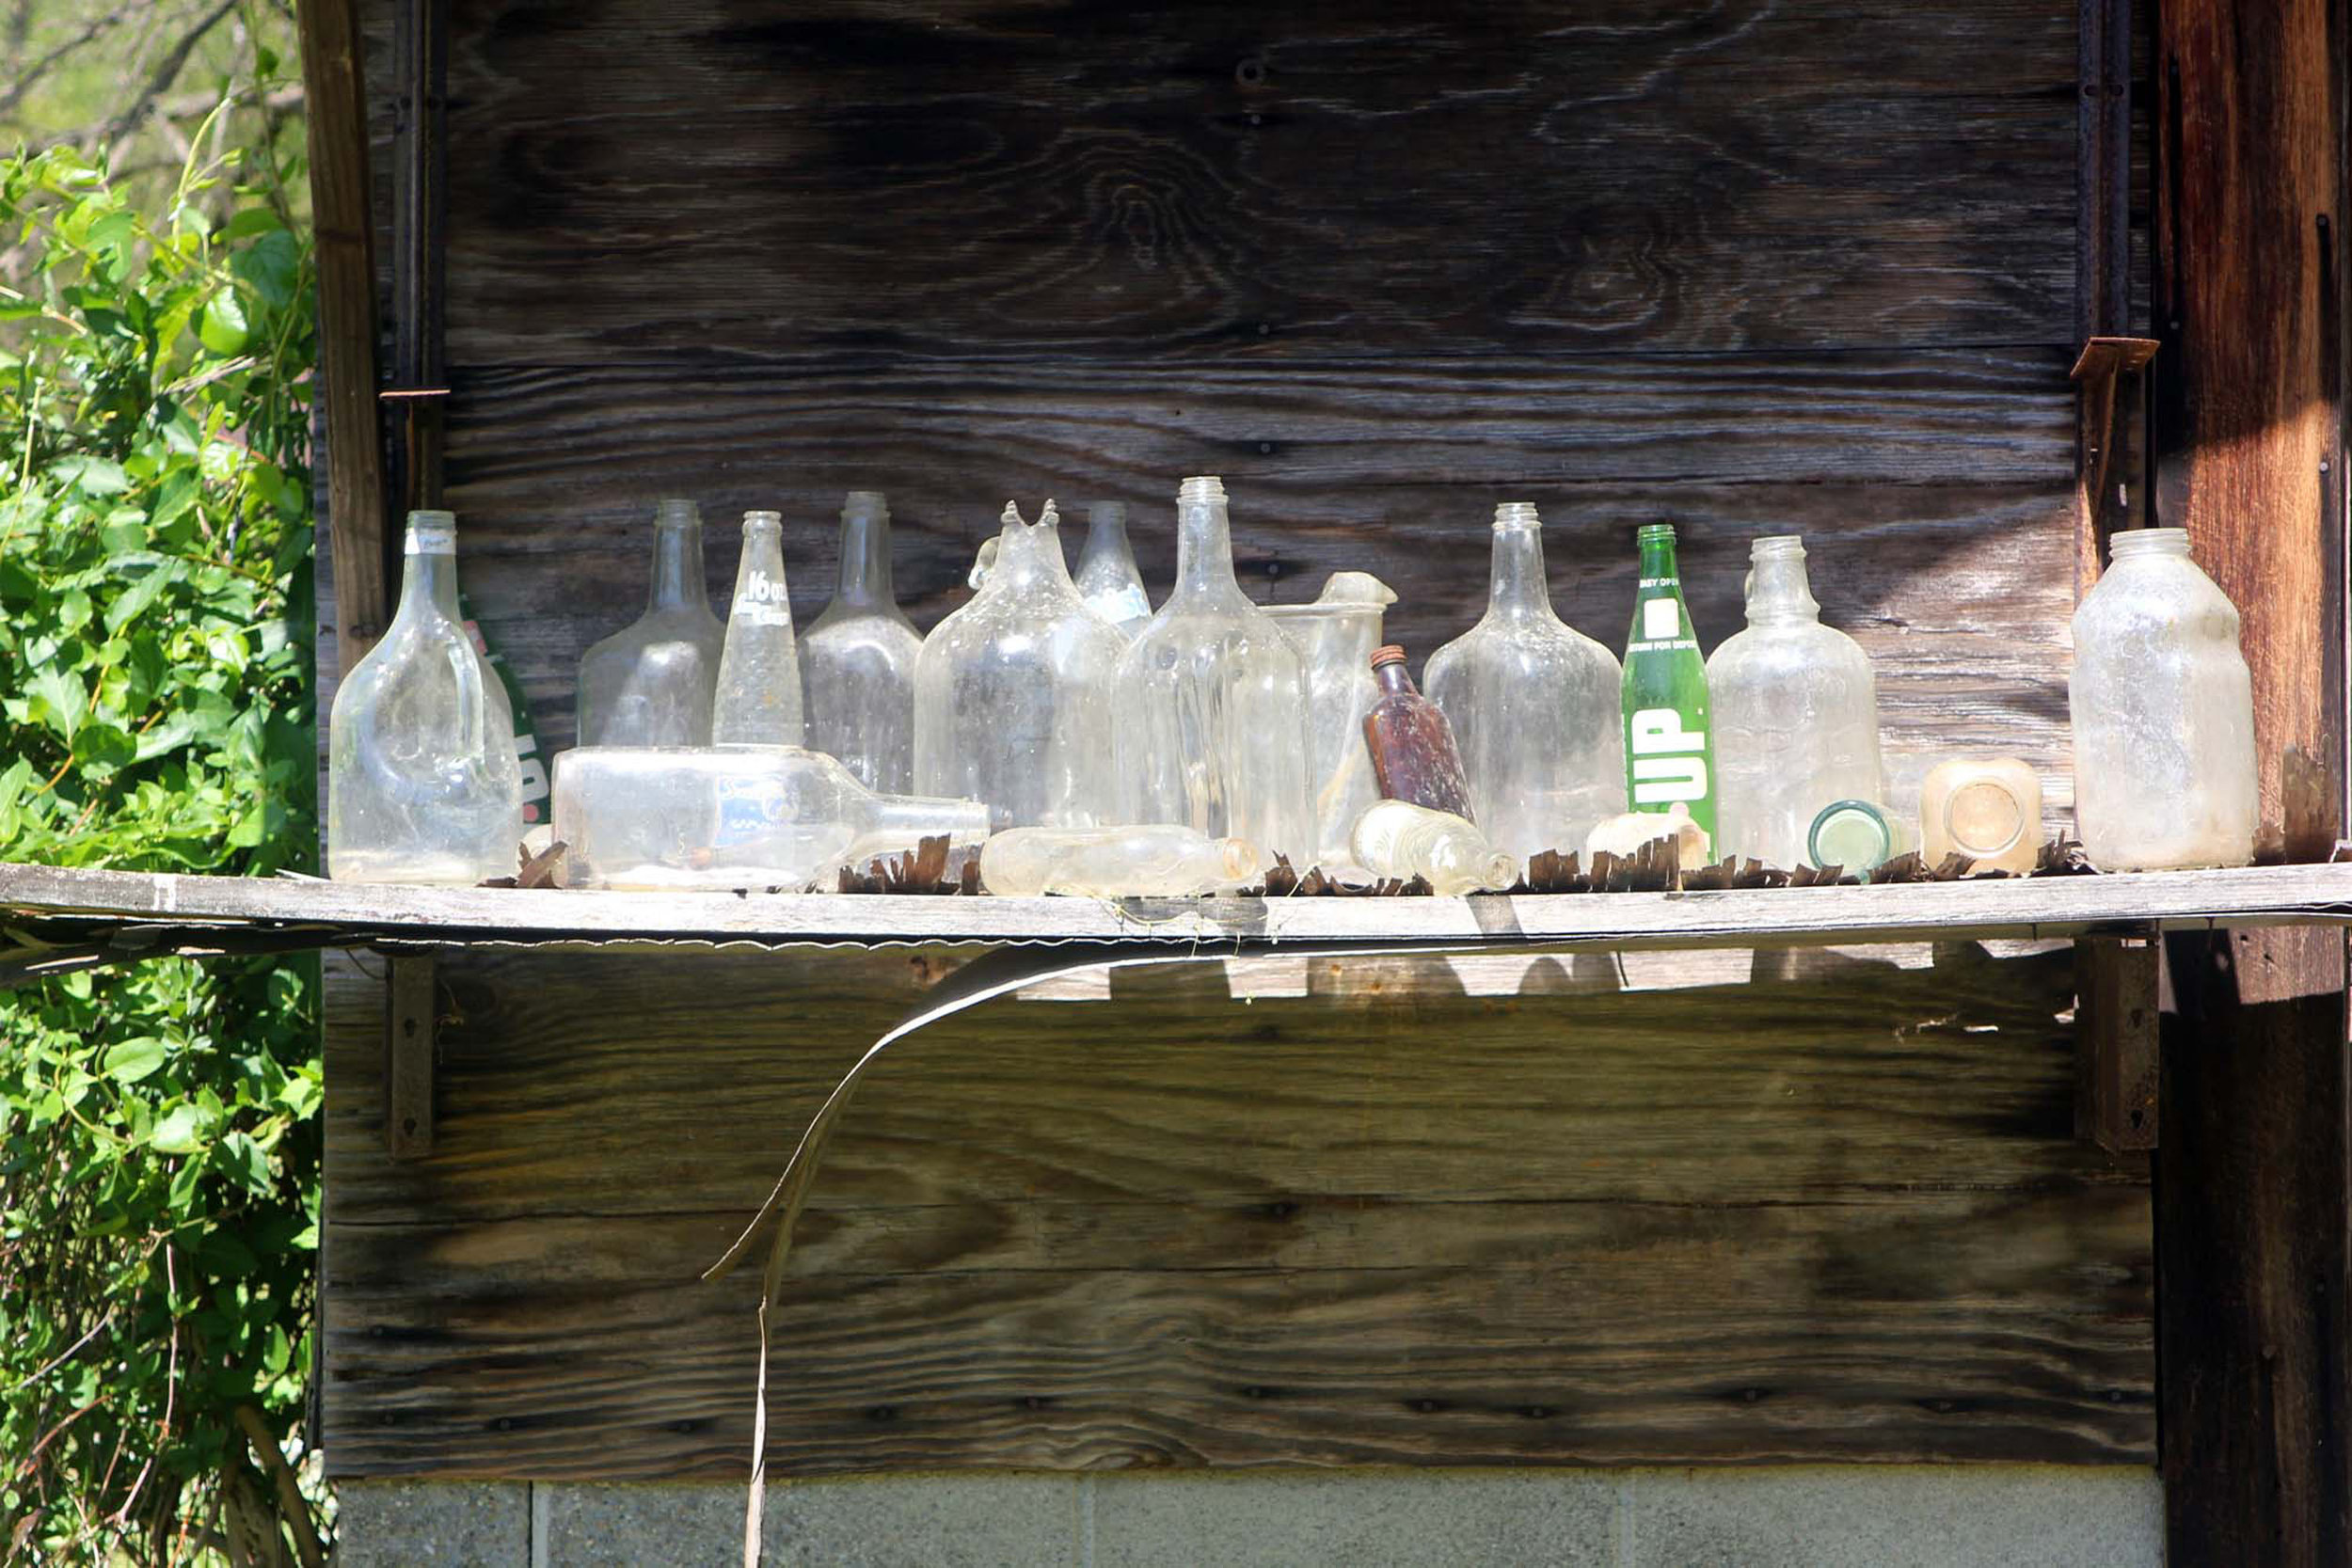 Bottle Collection in the Flat Rock Barn